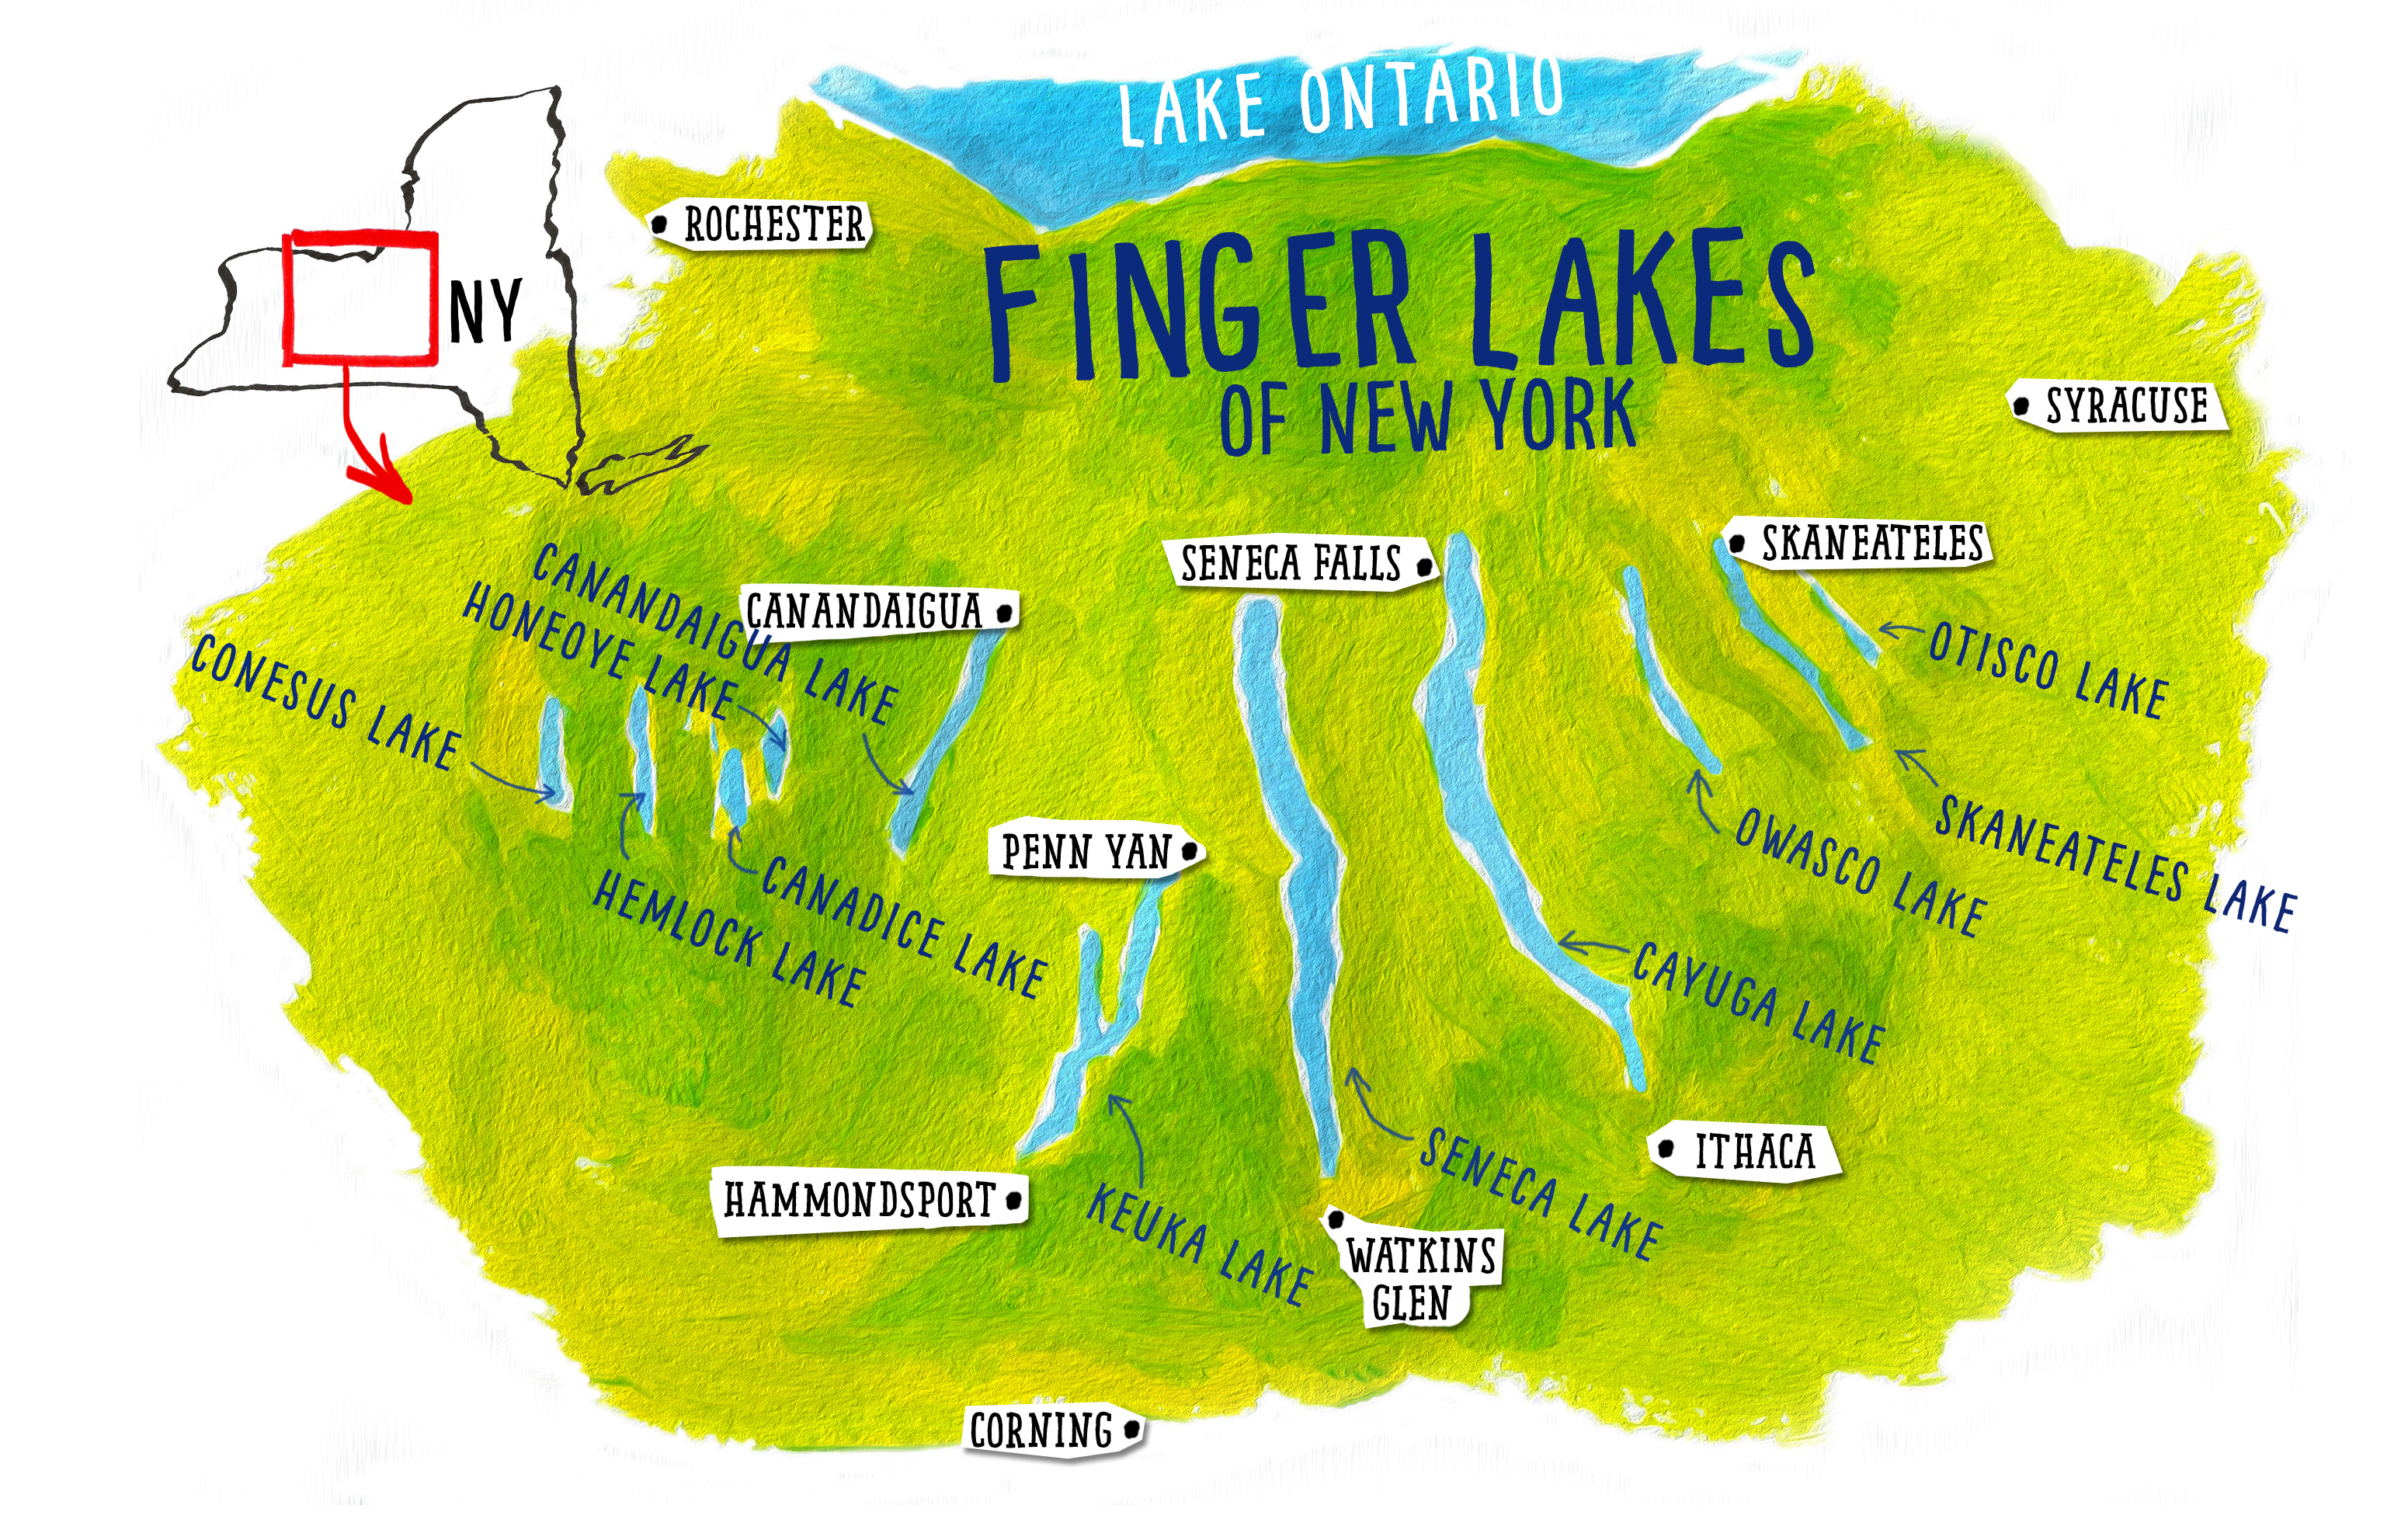 Map Of New York Finger Lakes Region.Maps By Scottfinger Lakes Maps By Scott